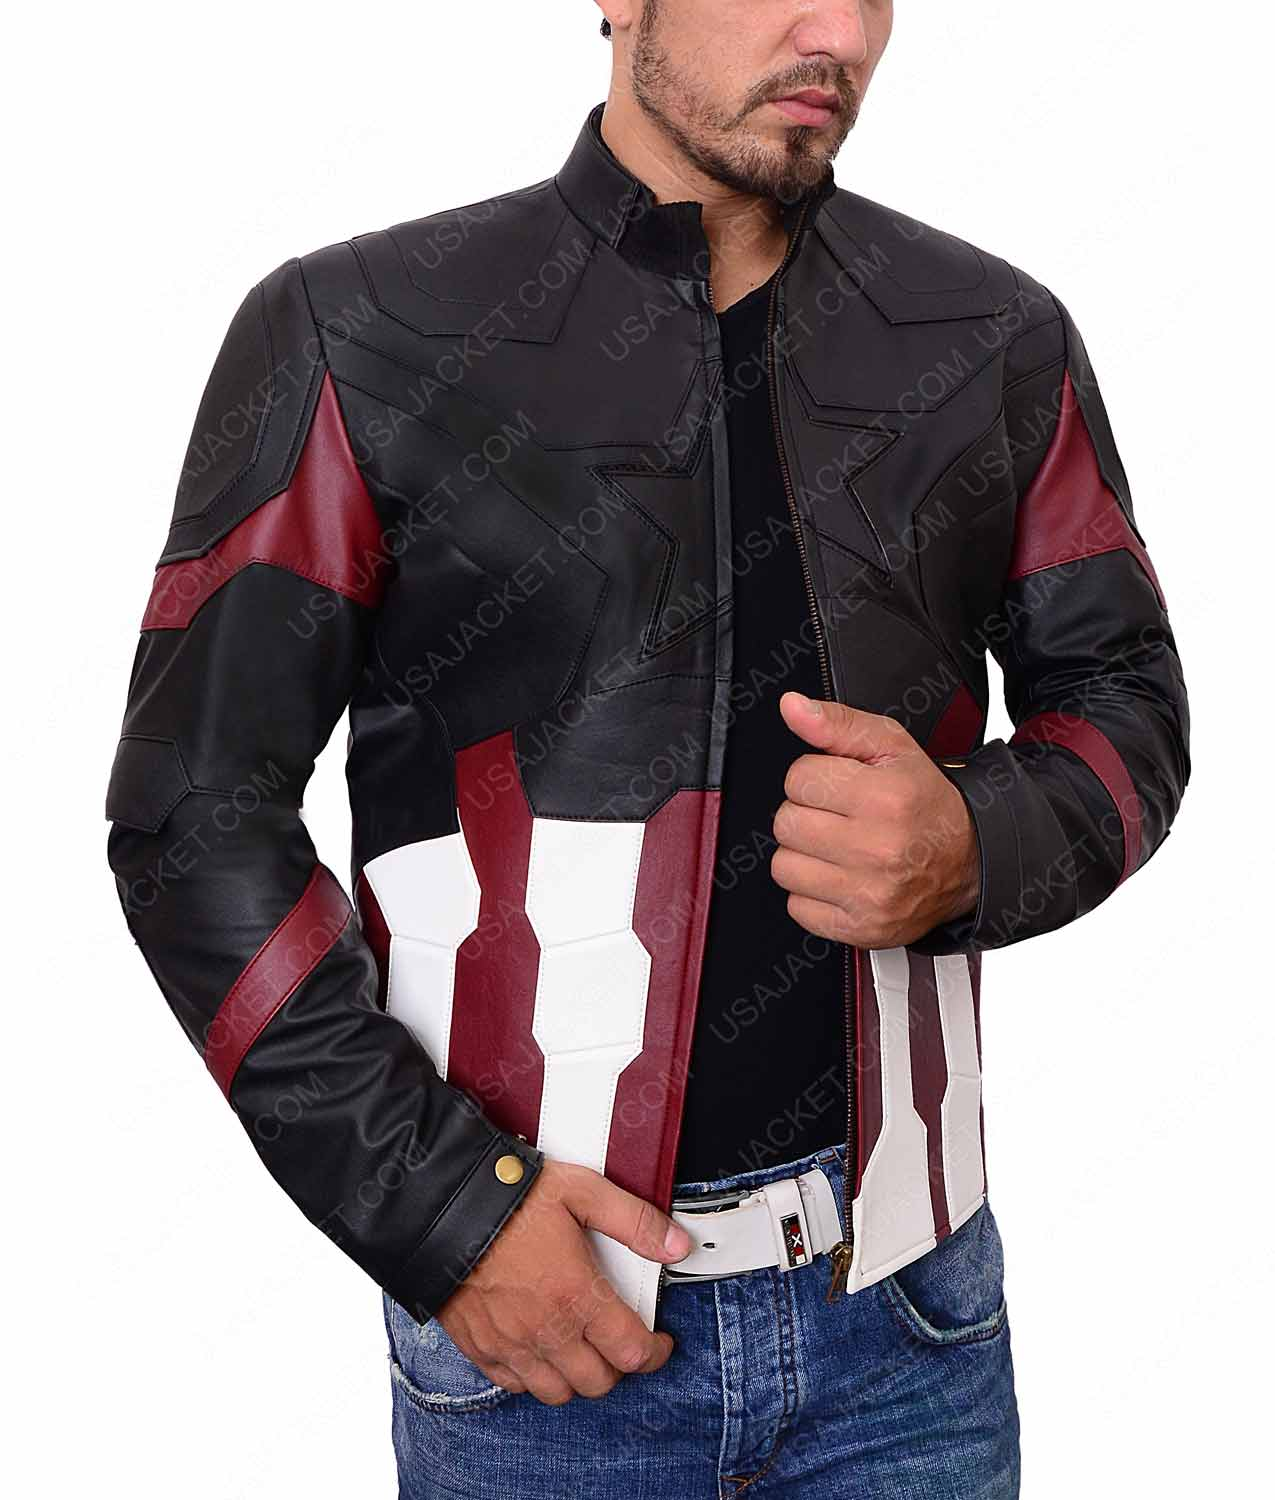 db44f204a Captain America Avengers Infinity War Leather Jacket